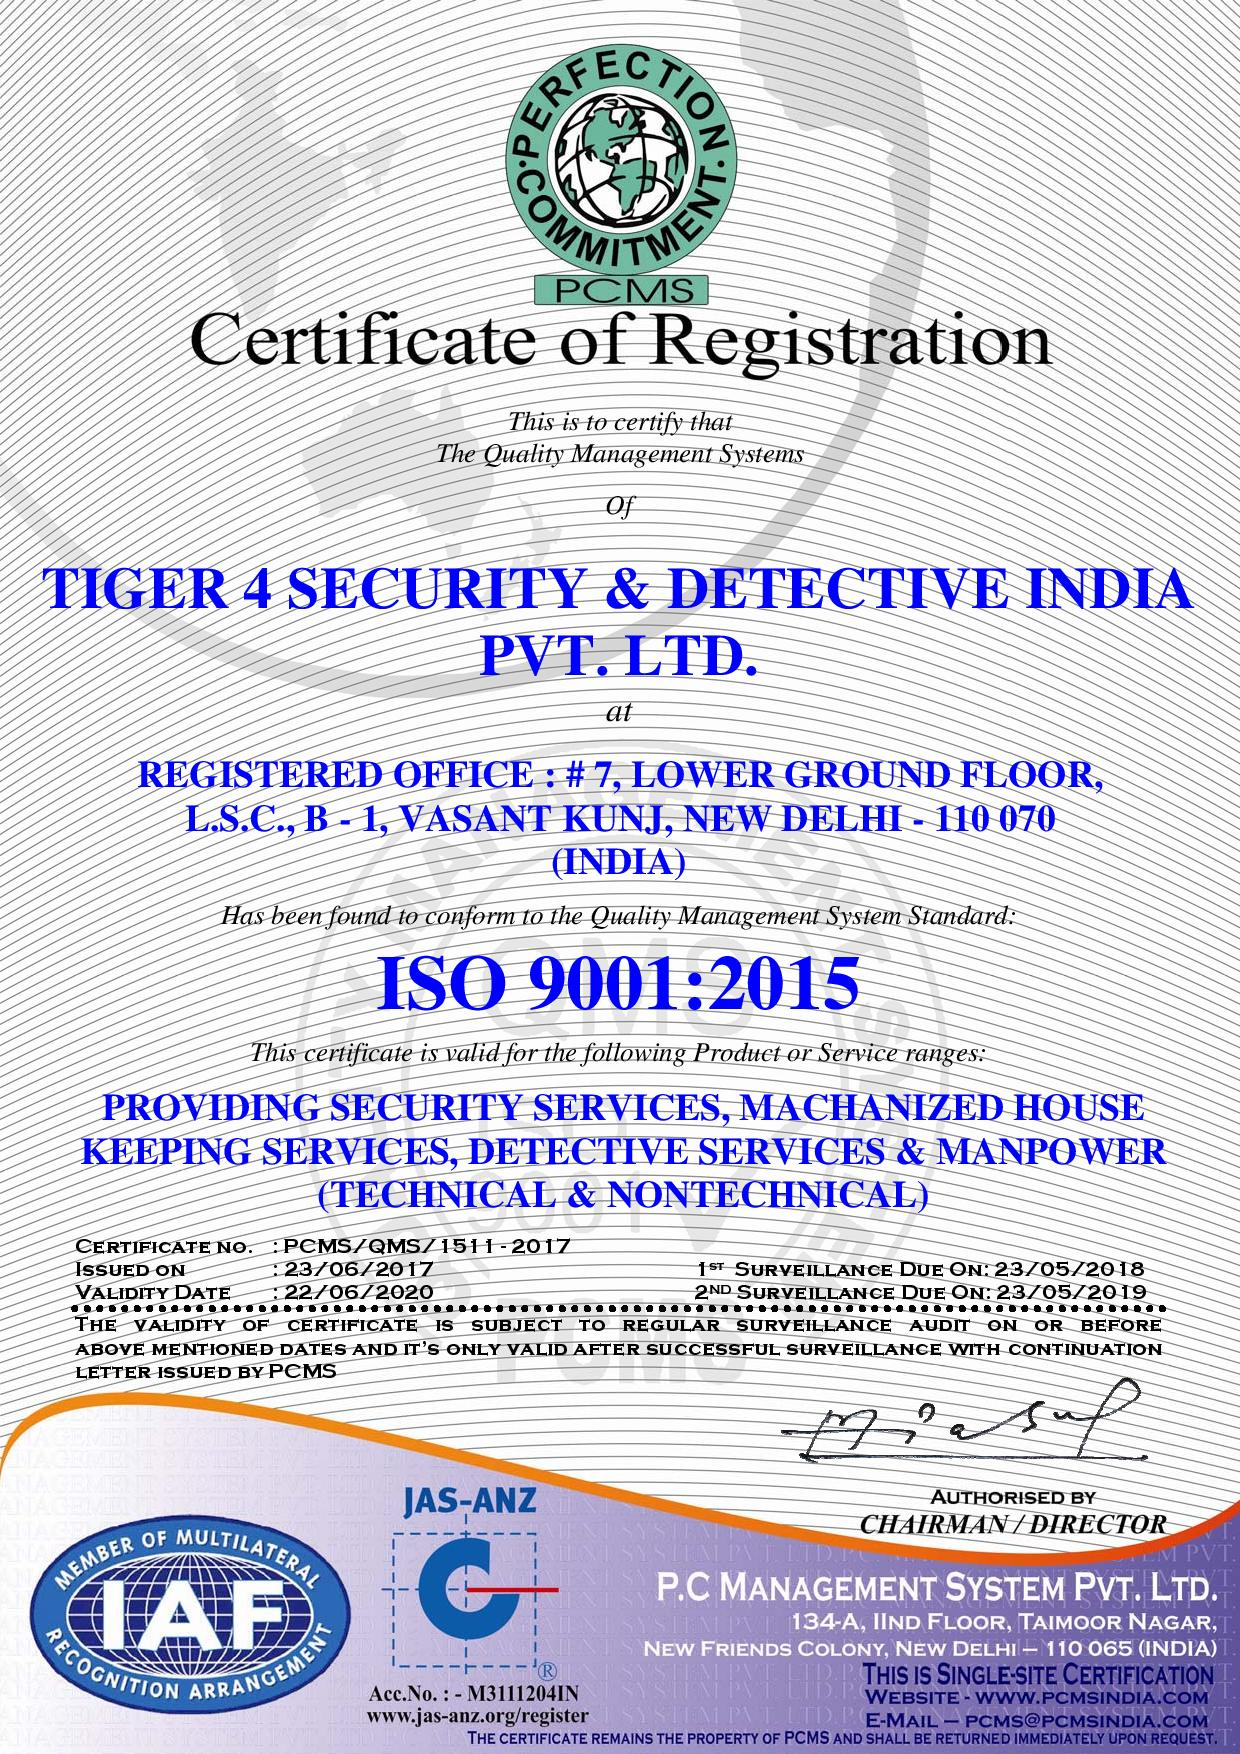 TIGER 4 SECURITY & DETECTIVE INDIA PVT. LTD. -9001-page-001